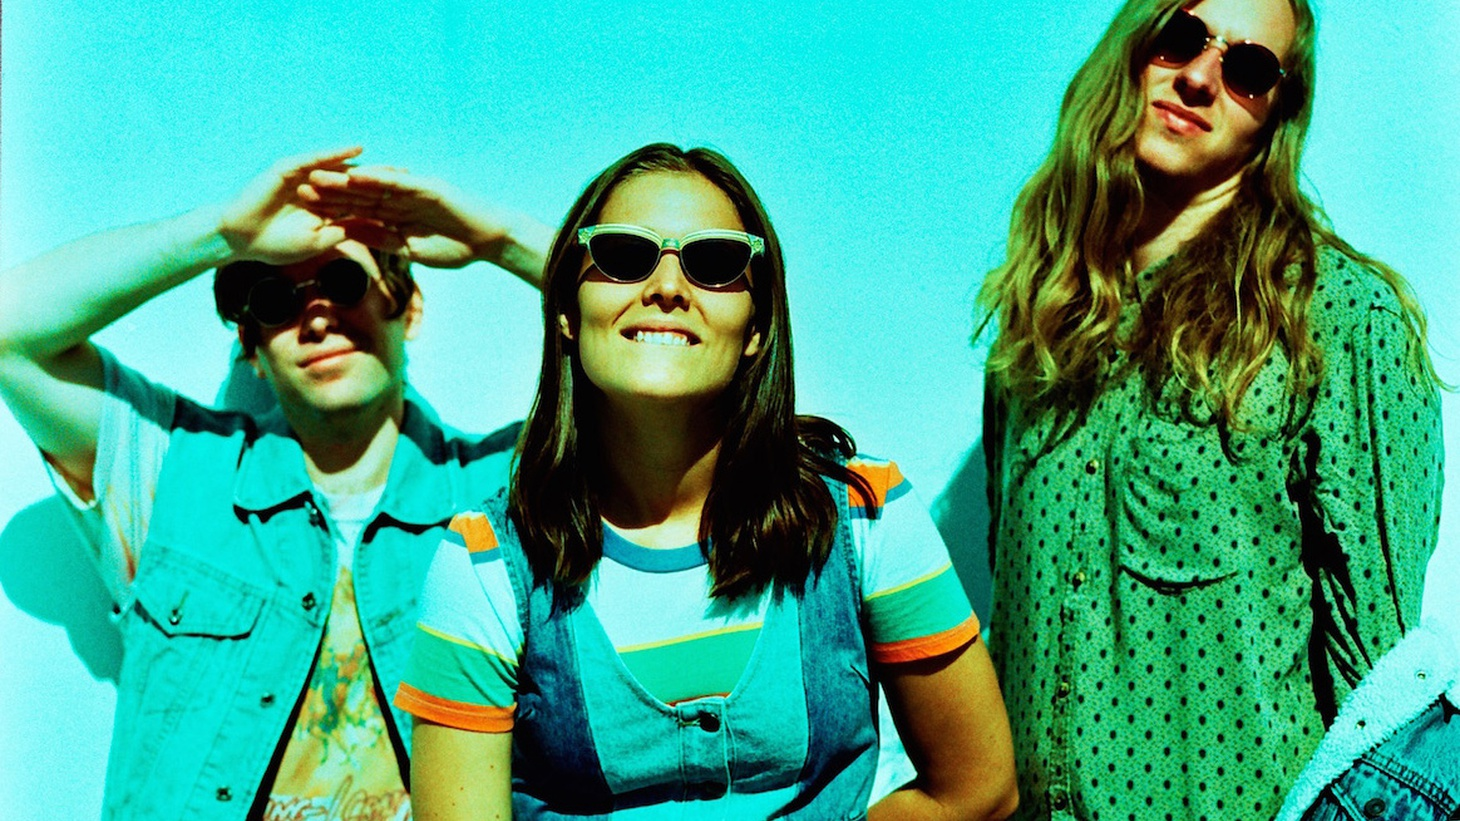 Sydney trio Middle Kids immediately caught our attention with catchy, finely crafted pop songs and the vocals of lead singer Hannah Joy.